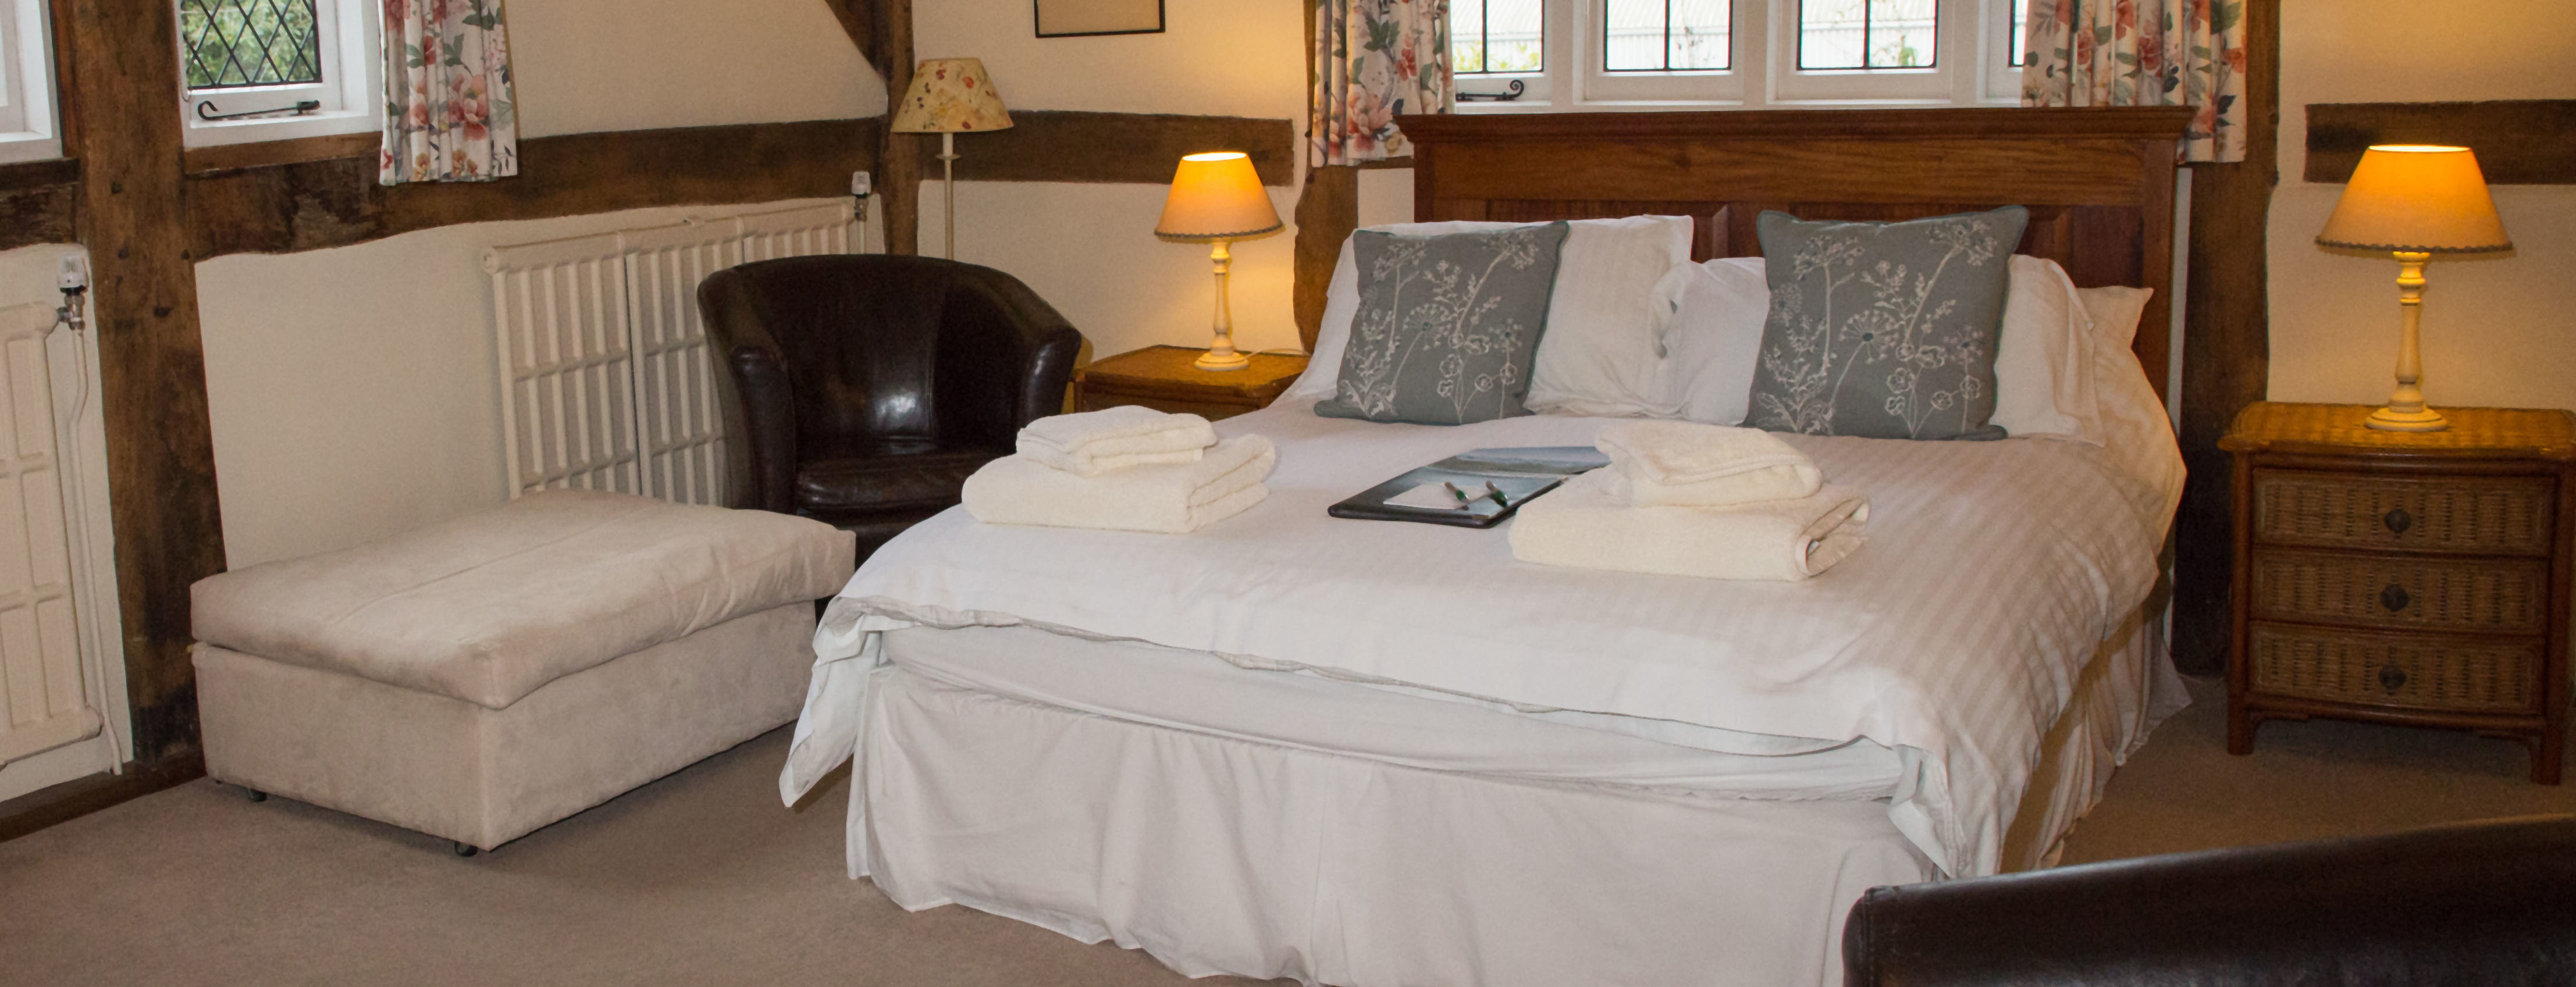 The Old Farmhouse Bed And Breakfast Bed And Breakfast In Windsor The Old Farmhouse Windsor